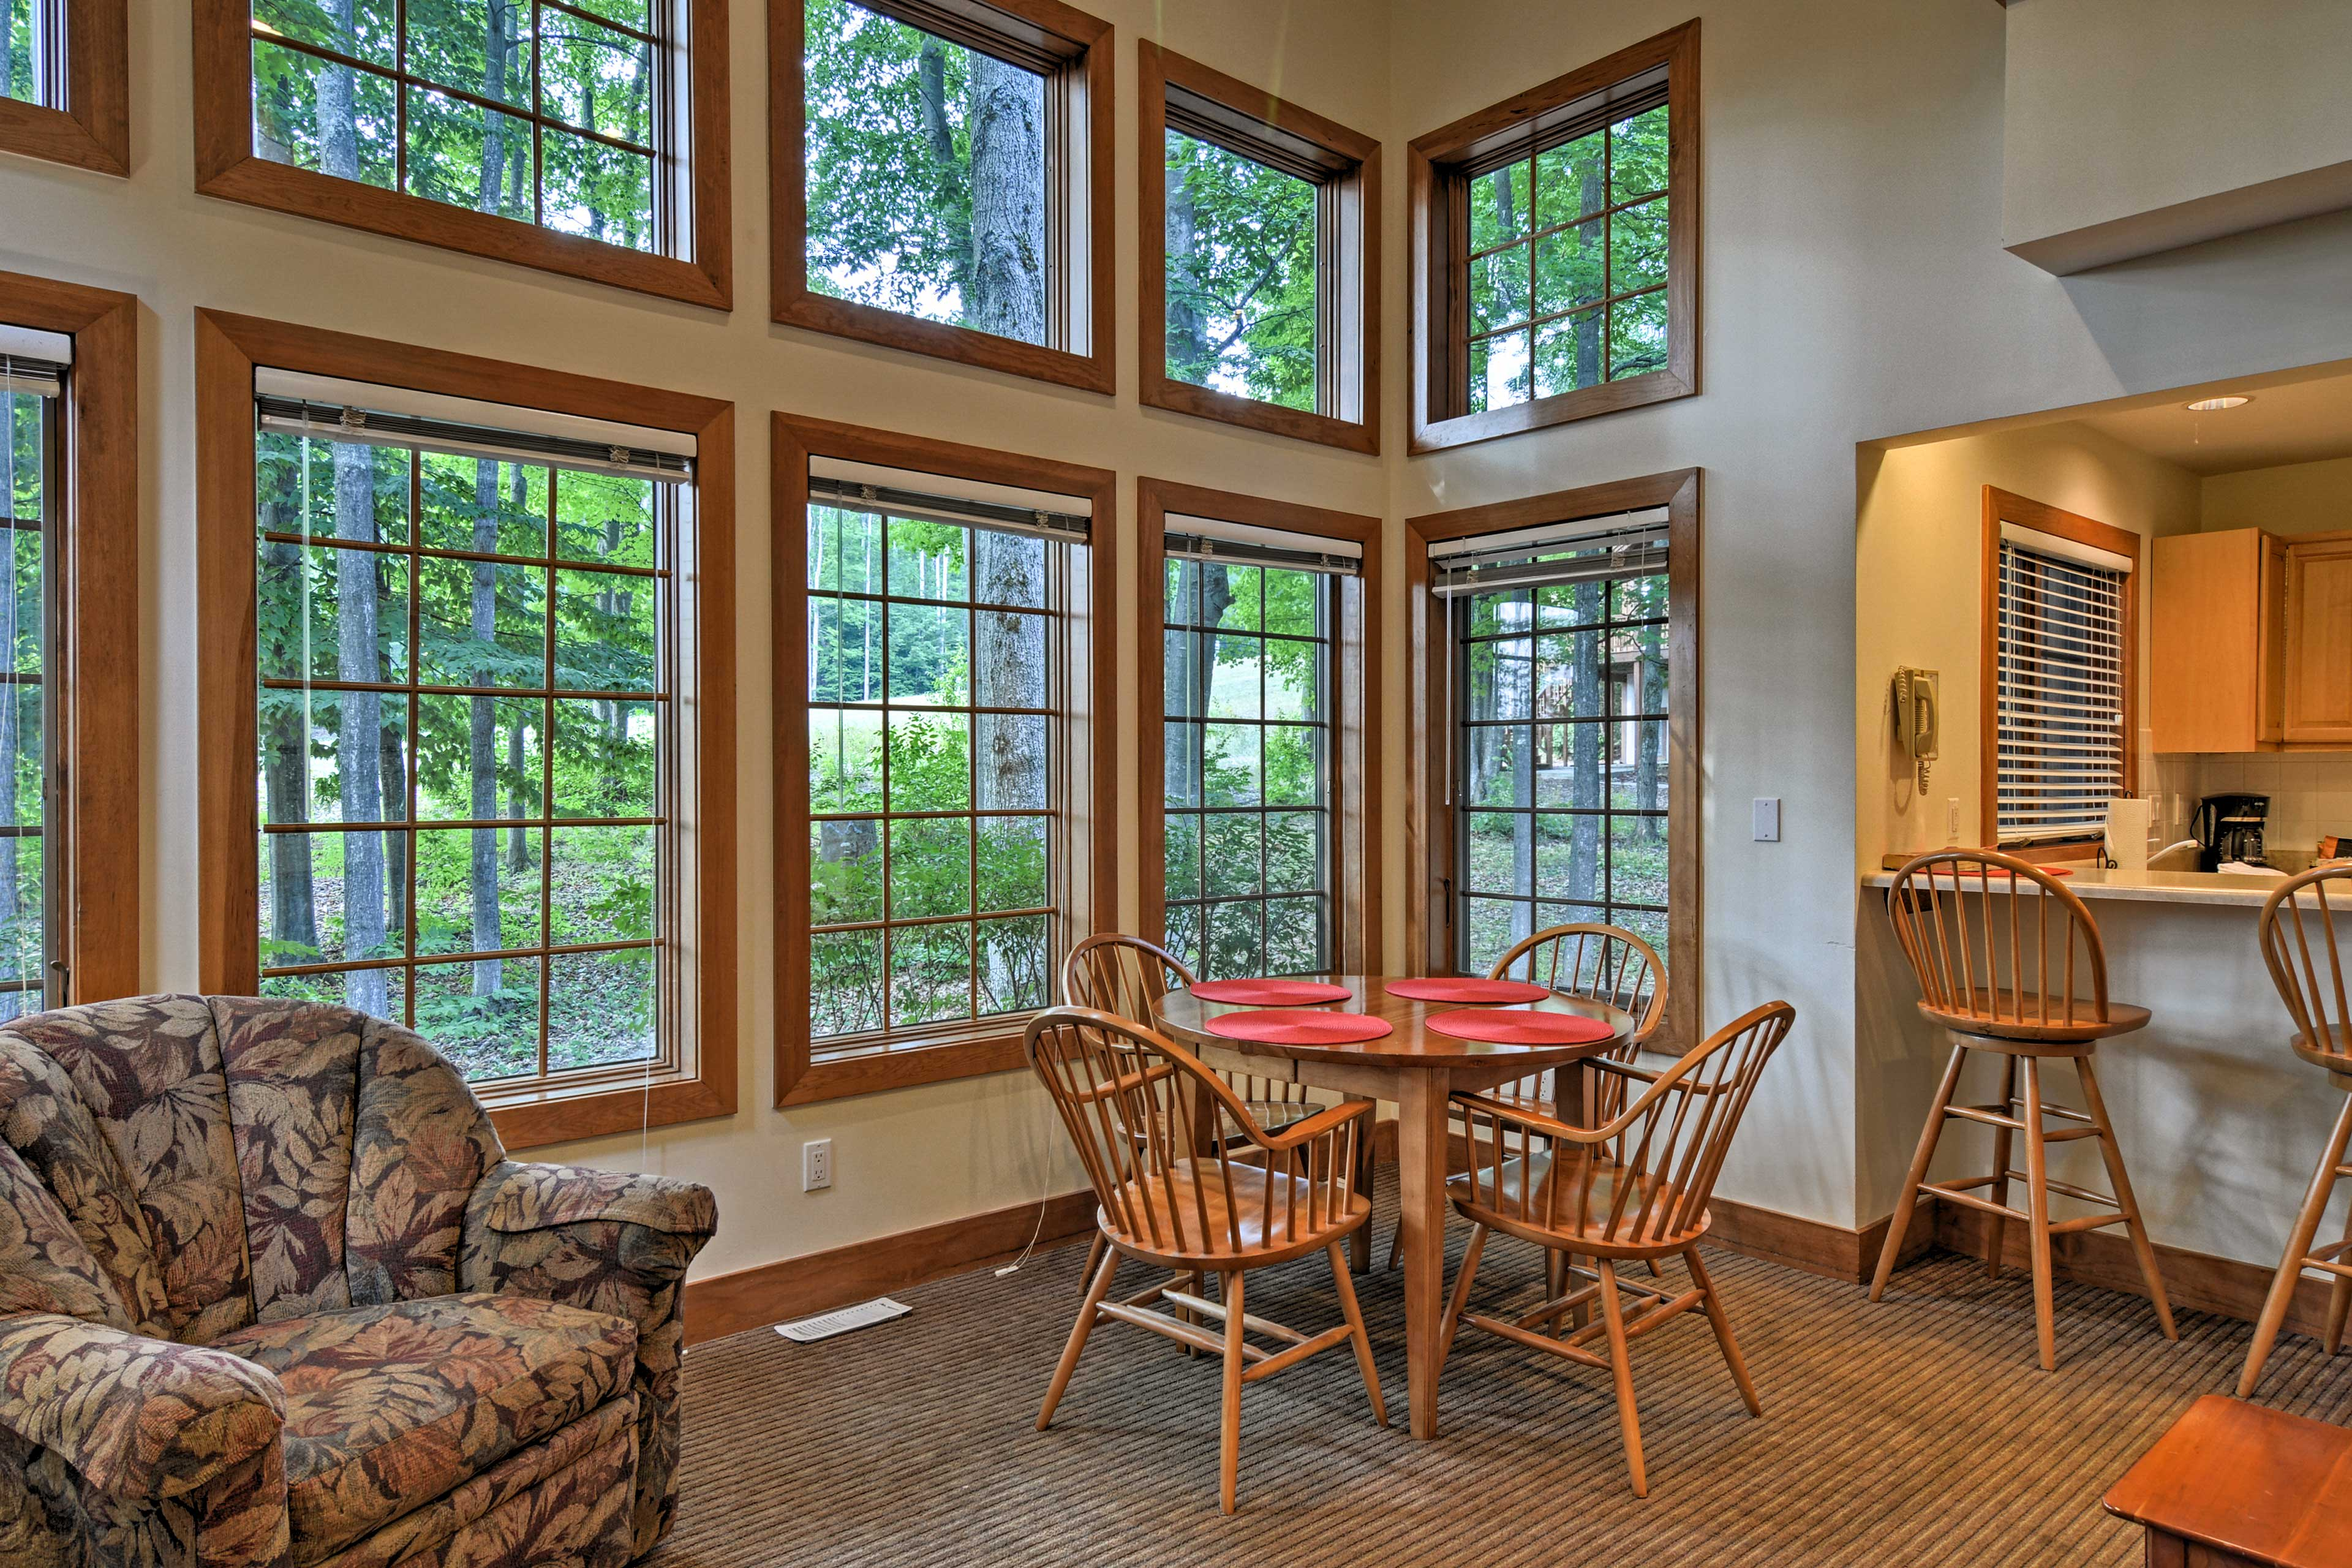 You'll love the natural light & pretty view from these floor-to-ceiling windows!